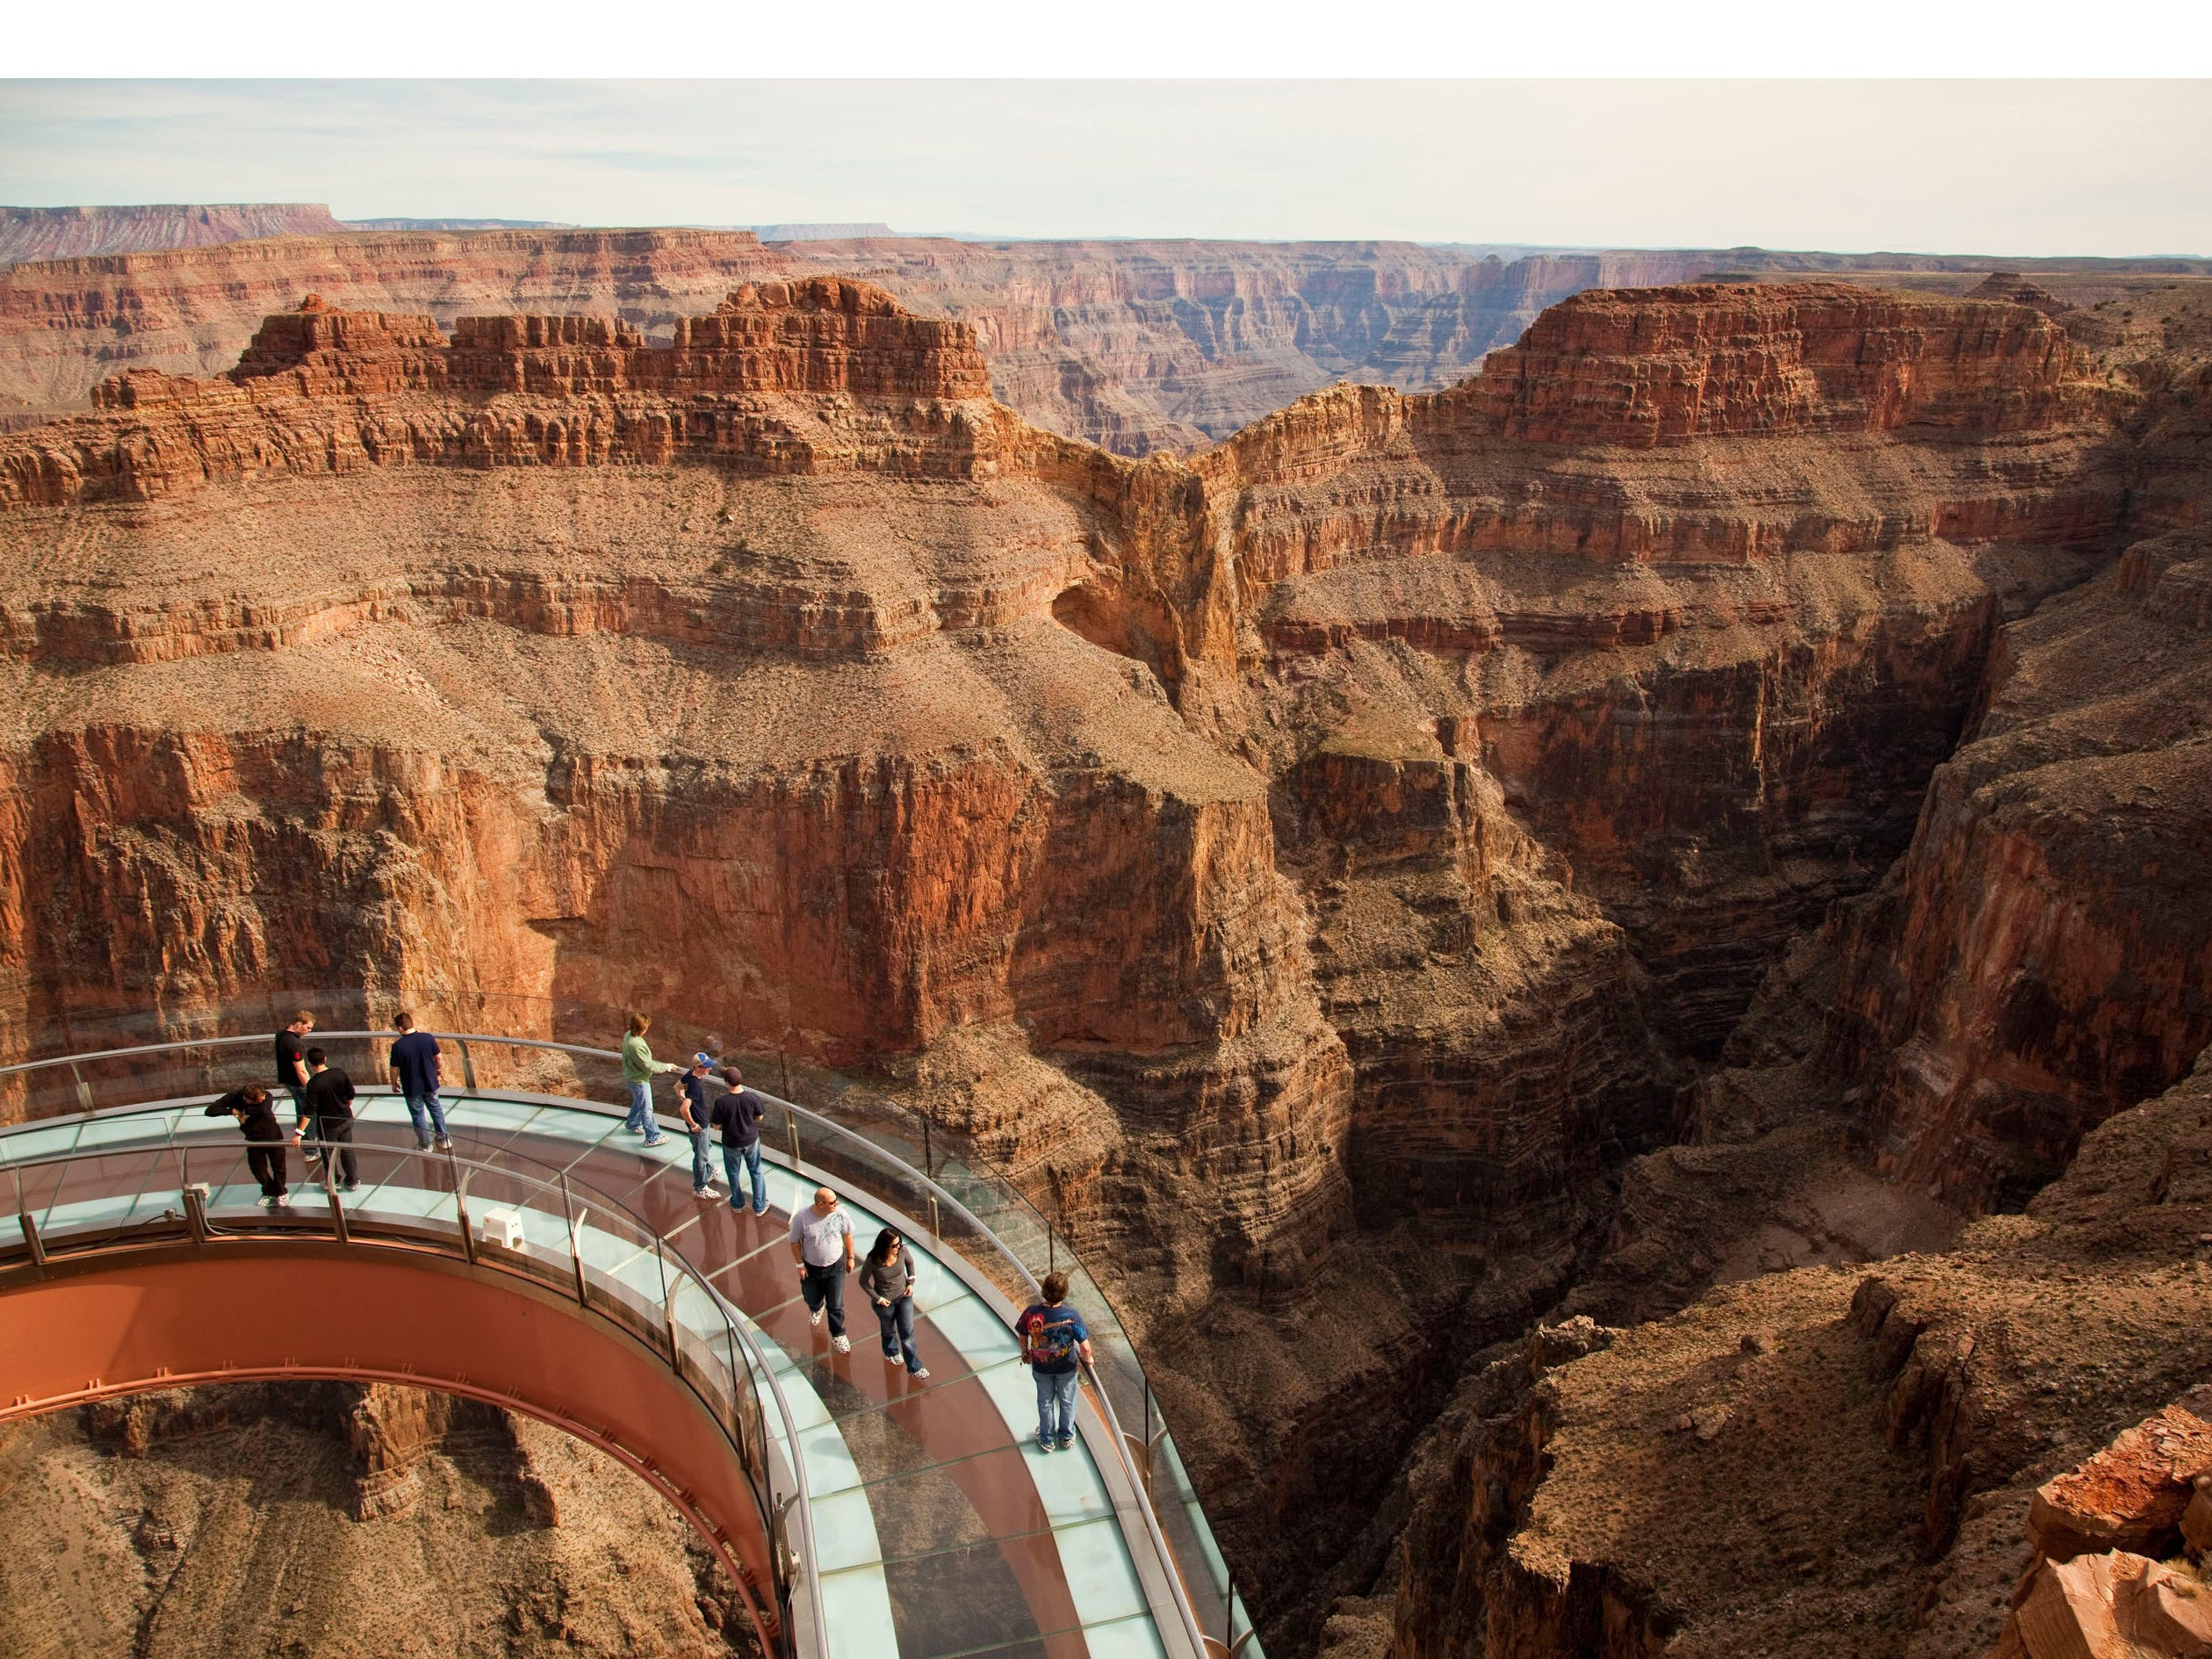 The Grand Canyon Skywalk in Arizona. To protect the glass paneling from scratches, cameras and cell phones are not allowed on the skywalk.